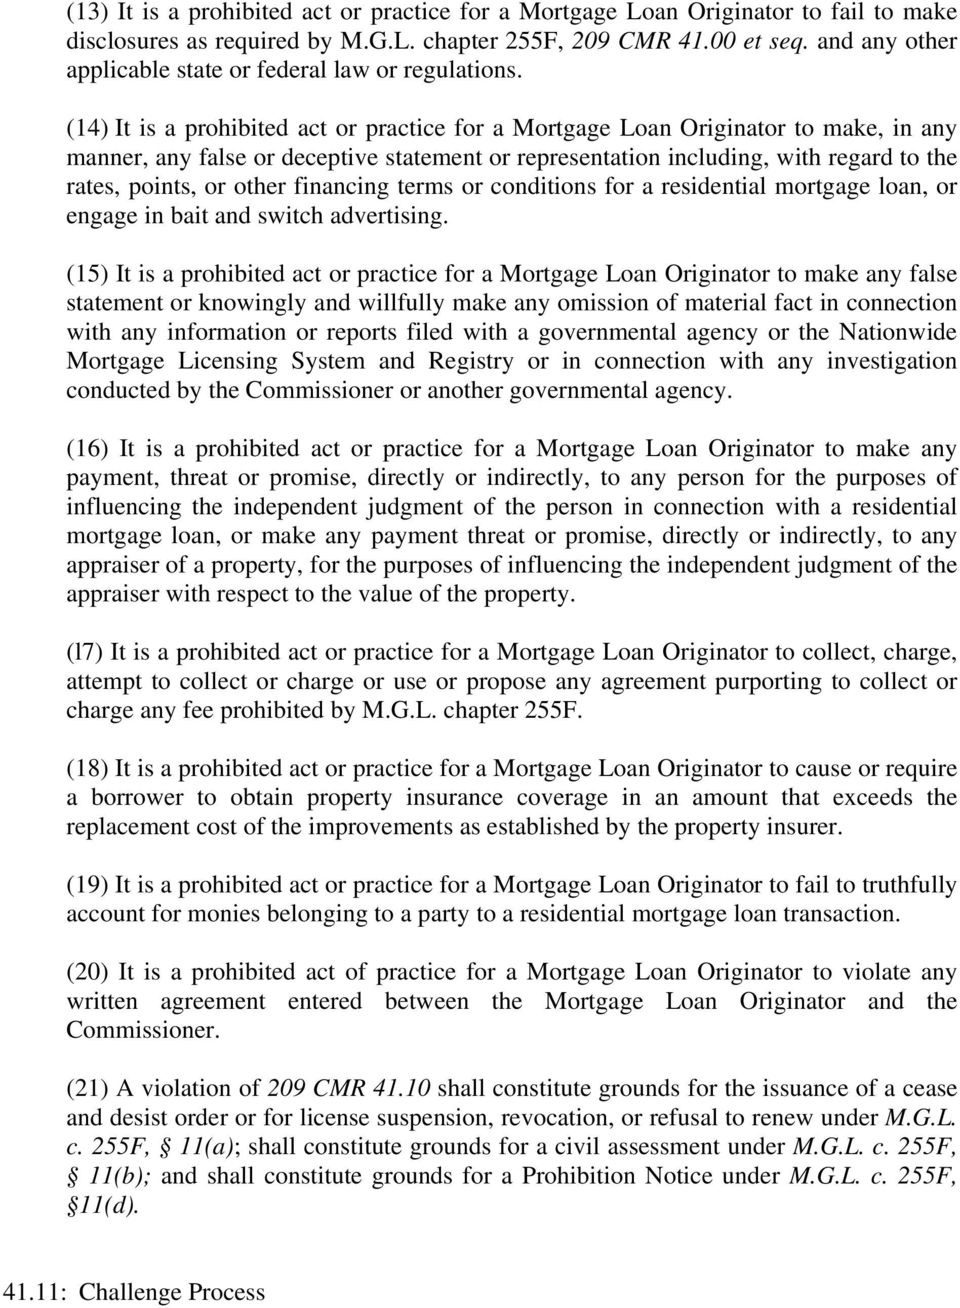 (14) It is a prohibited act or practice for a Mortgage Loan Originator to make, in any manner, any false or deceptive statement or representation including, with regard to the rates, points, or other